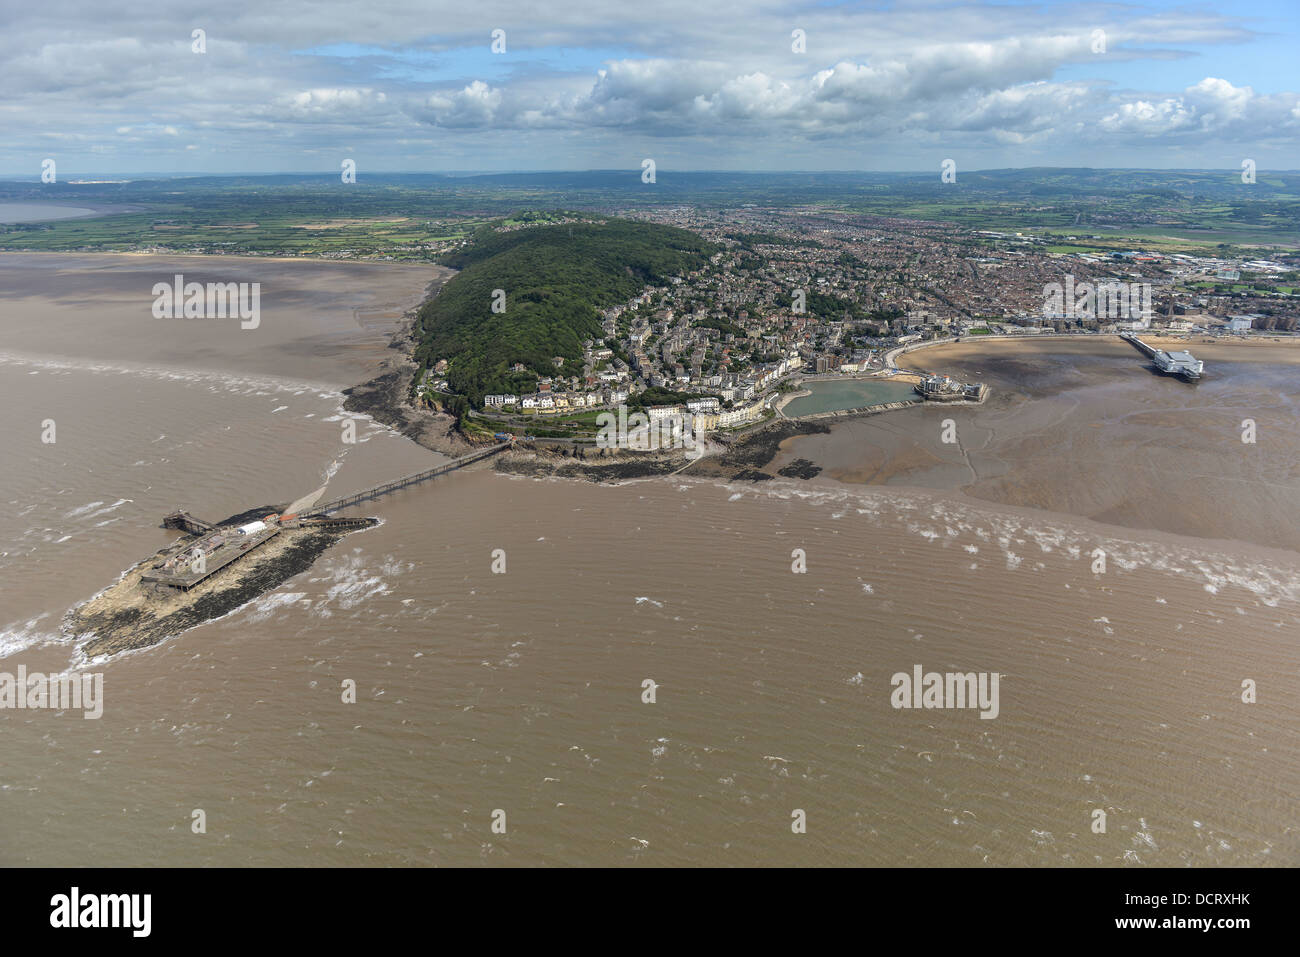 Aerial photograph of Weston-Super-Mare - Stock Image